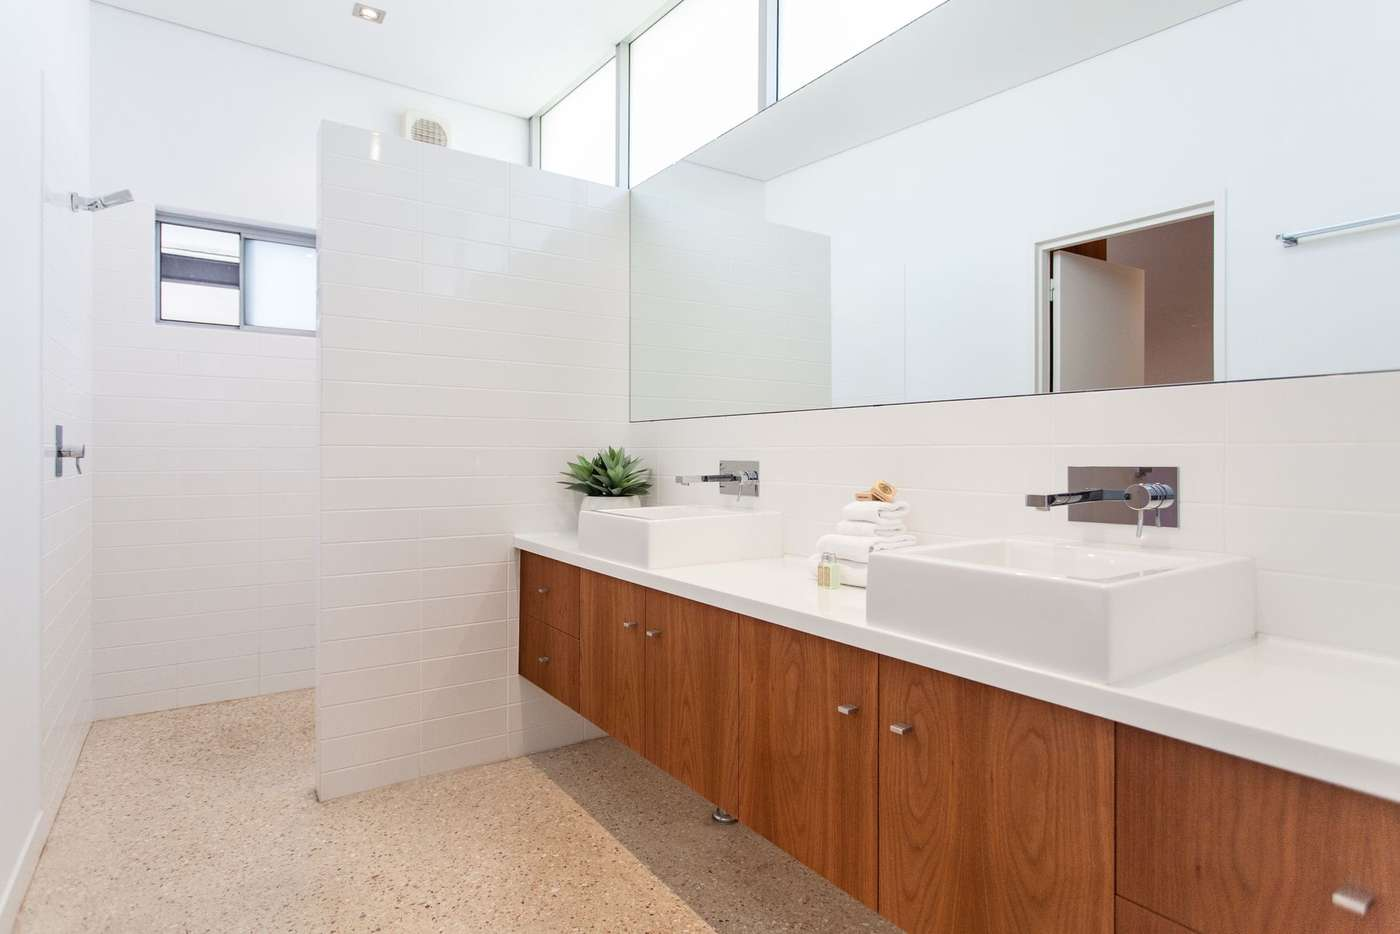 Seventh view of Homely house listing, 21 Jingarie Place, Dunsborough WA 6281